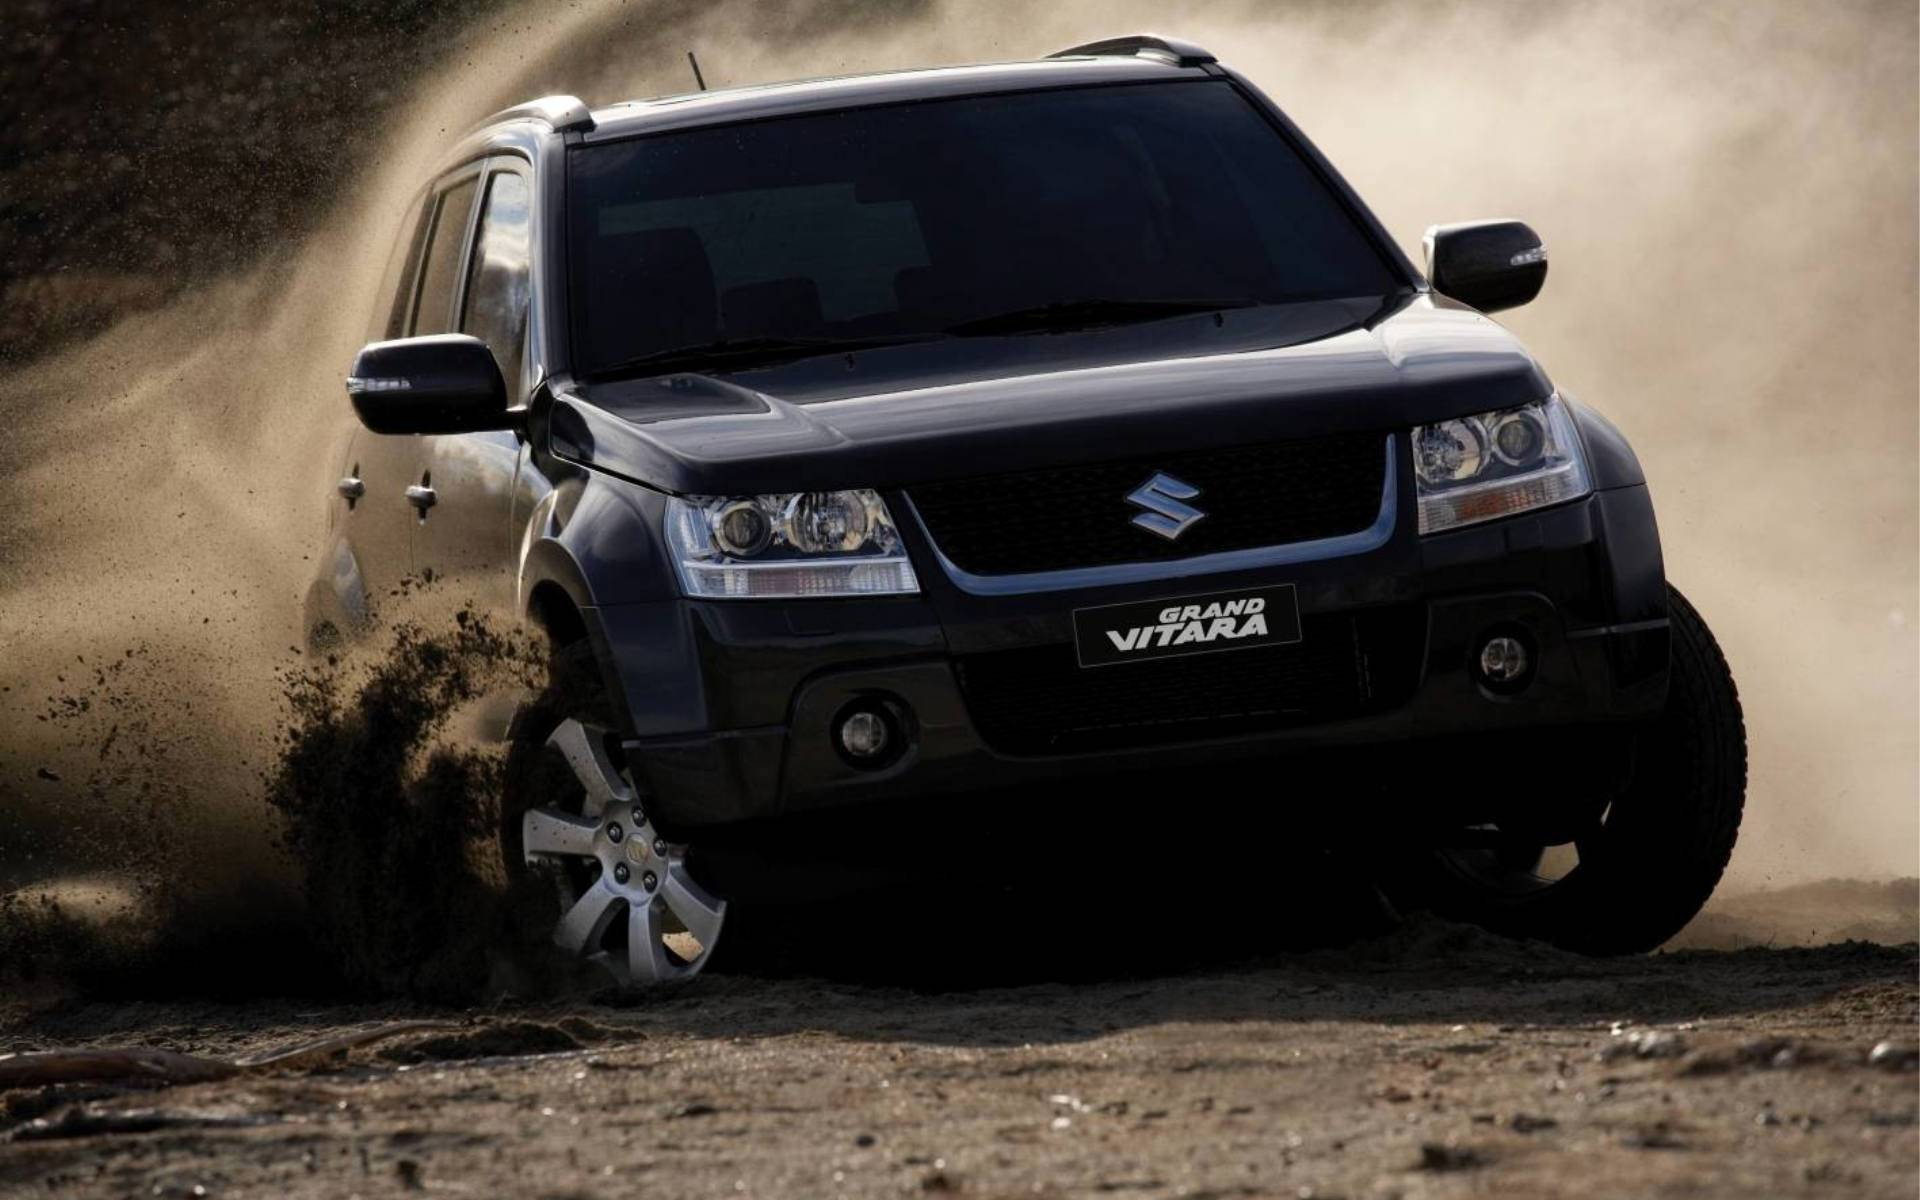 Suzuki Grand Vitara Off Road Widescreen HD Wallpaper 3